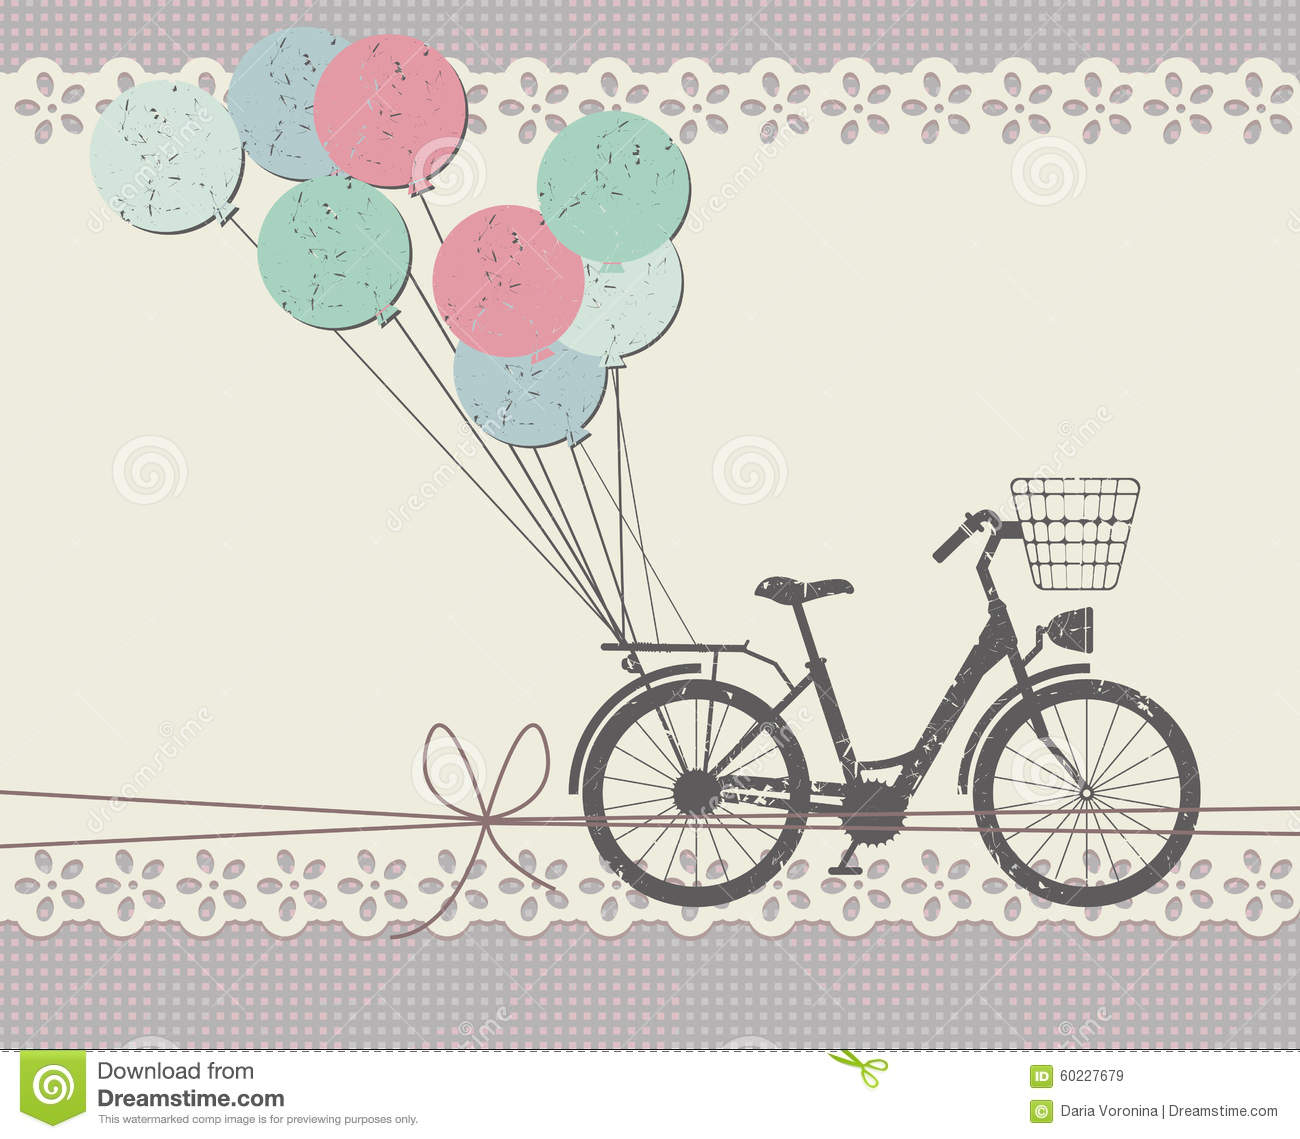 Stylish Greeting card with retro bicycle